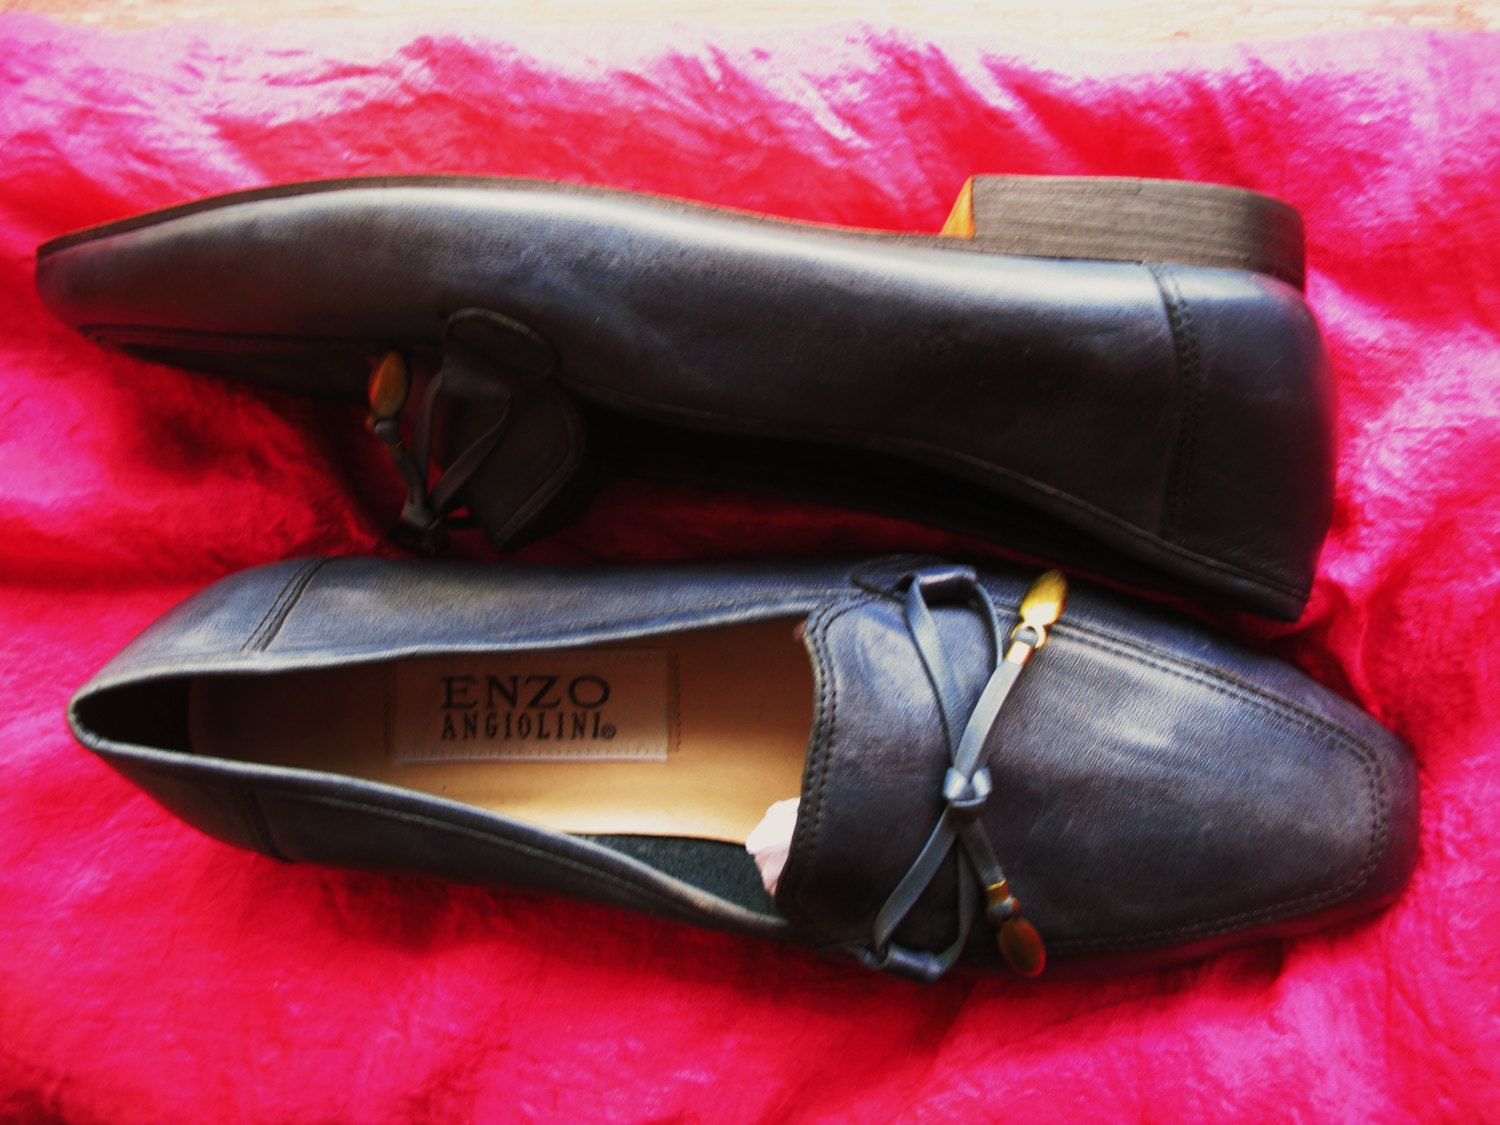 Amaizing Vintage Enzo Angiolini Shoes Blue  Leather With  Bow Low Heels Women Loafers Size 7.5 M/38 by oldmagicchest on Etsy